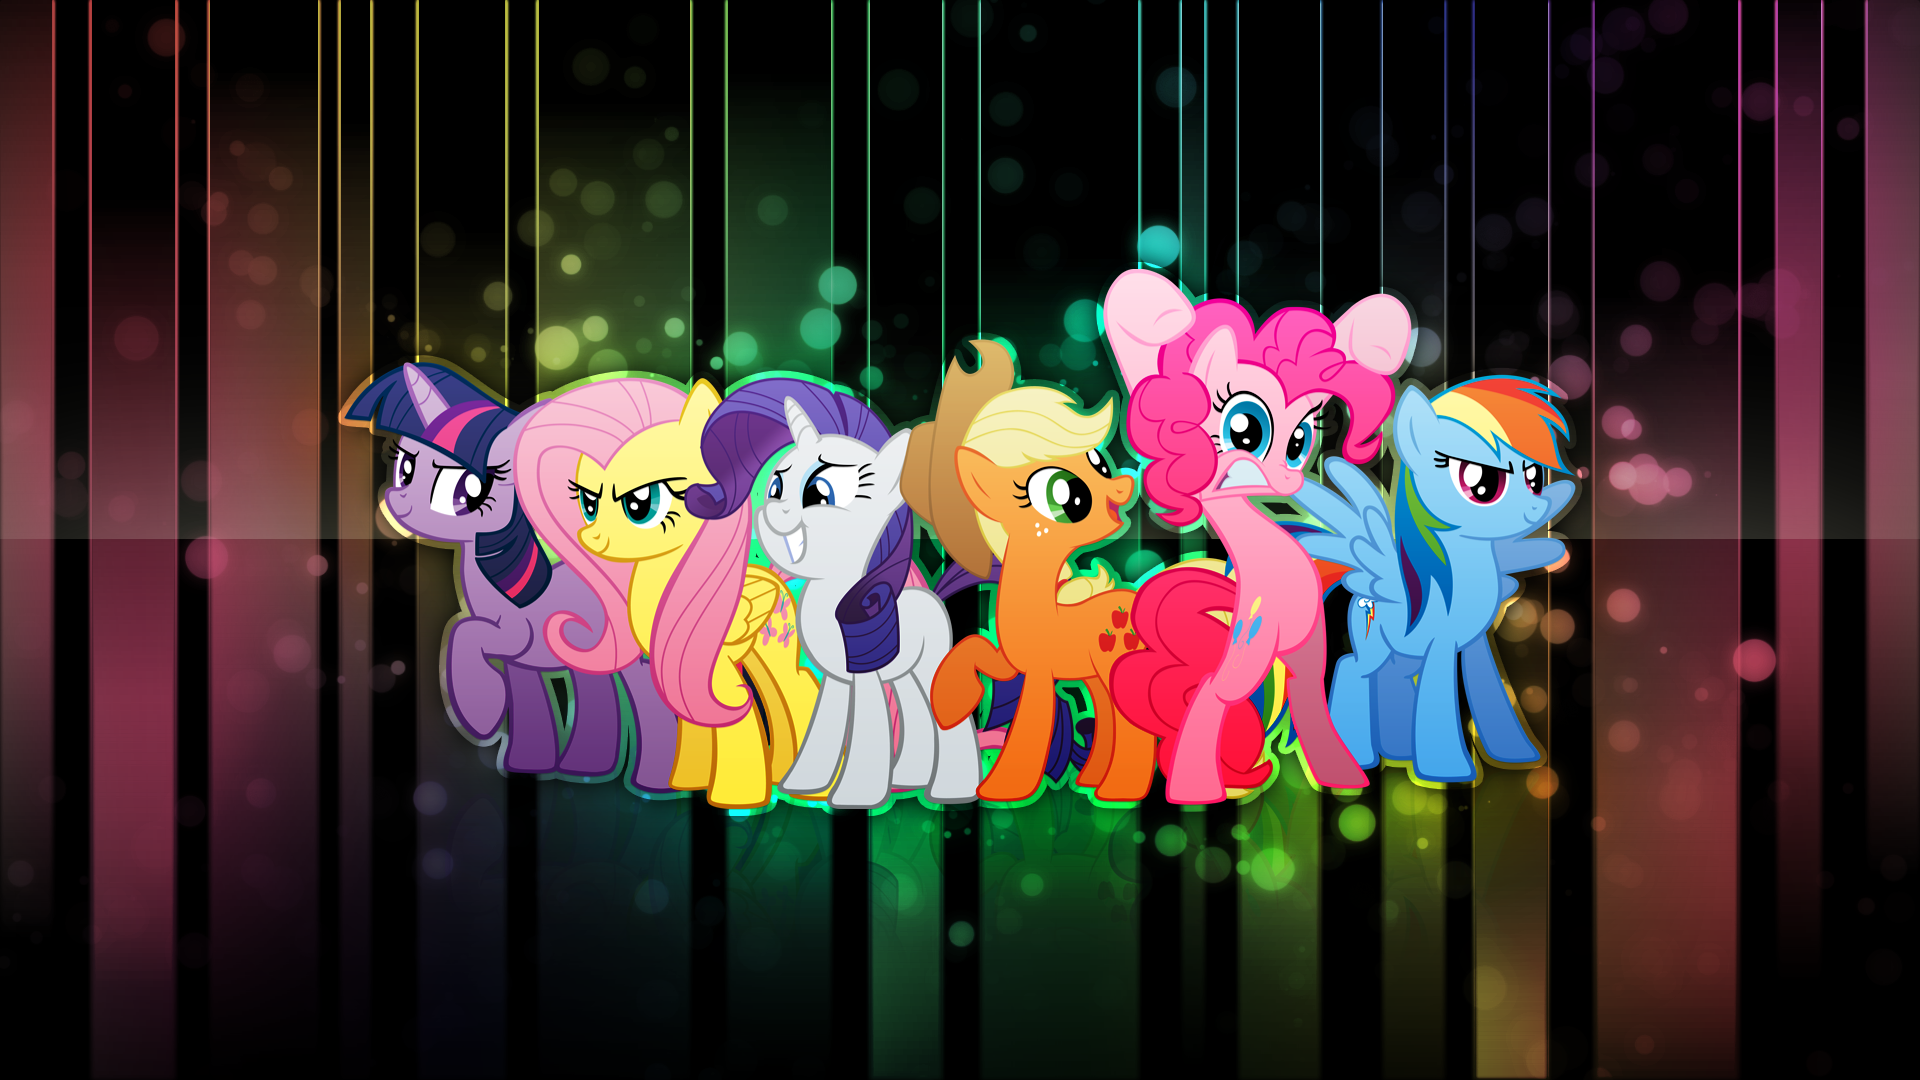 Best My Little Pony Wallpapers for Desktop: 03.14.14